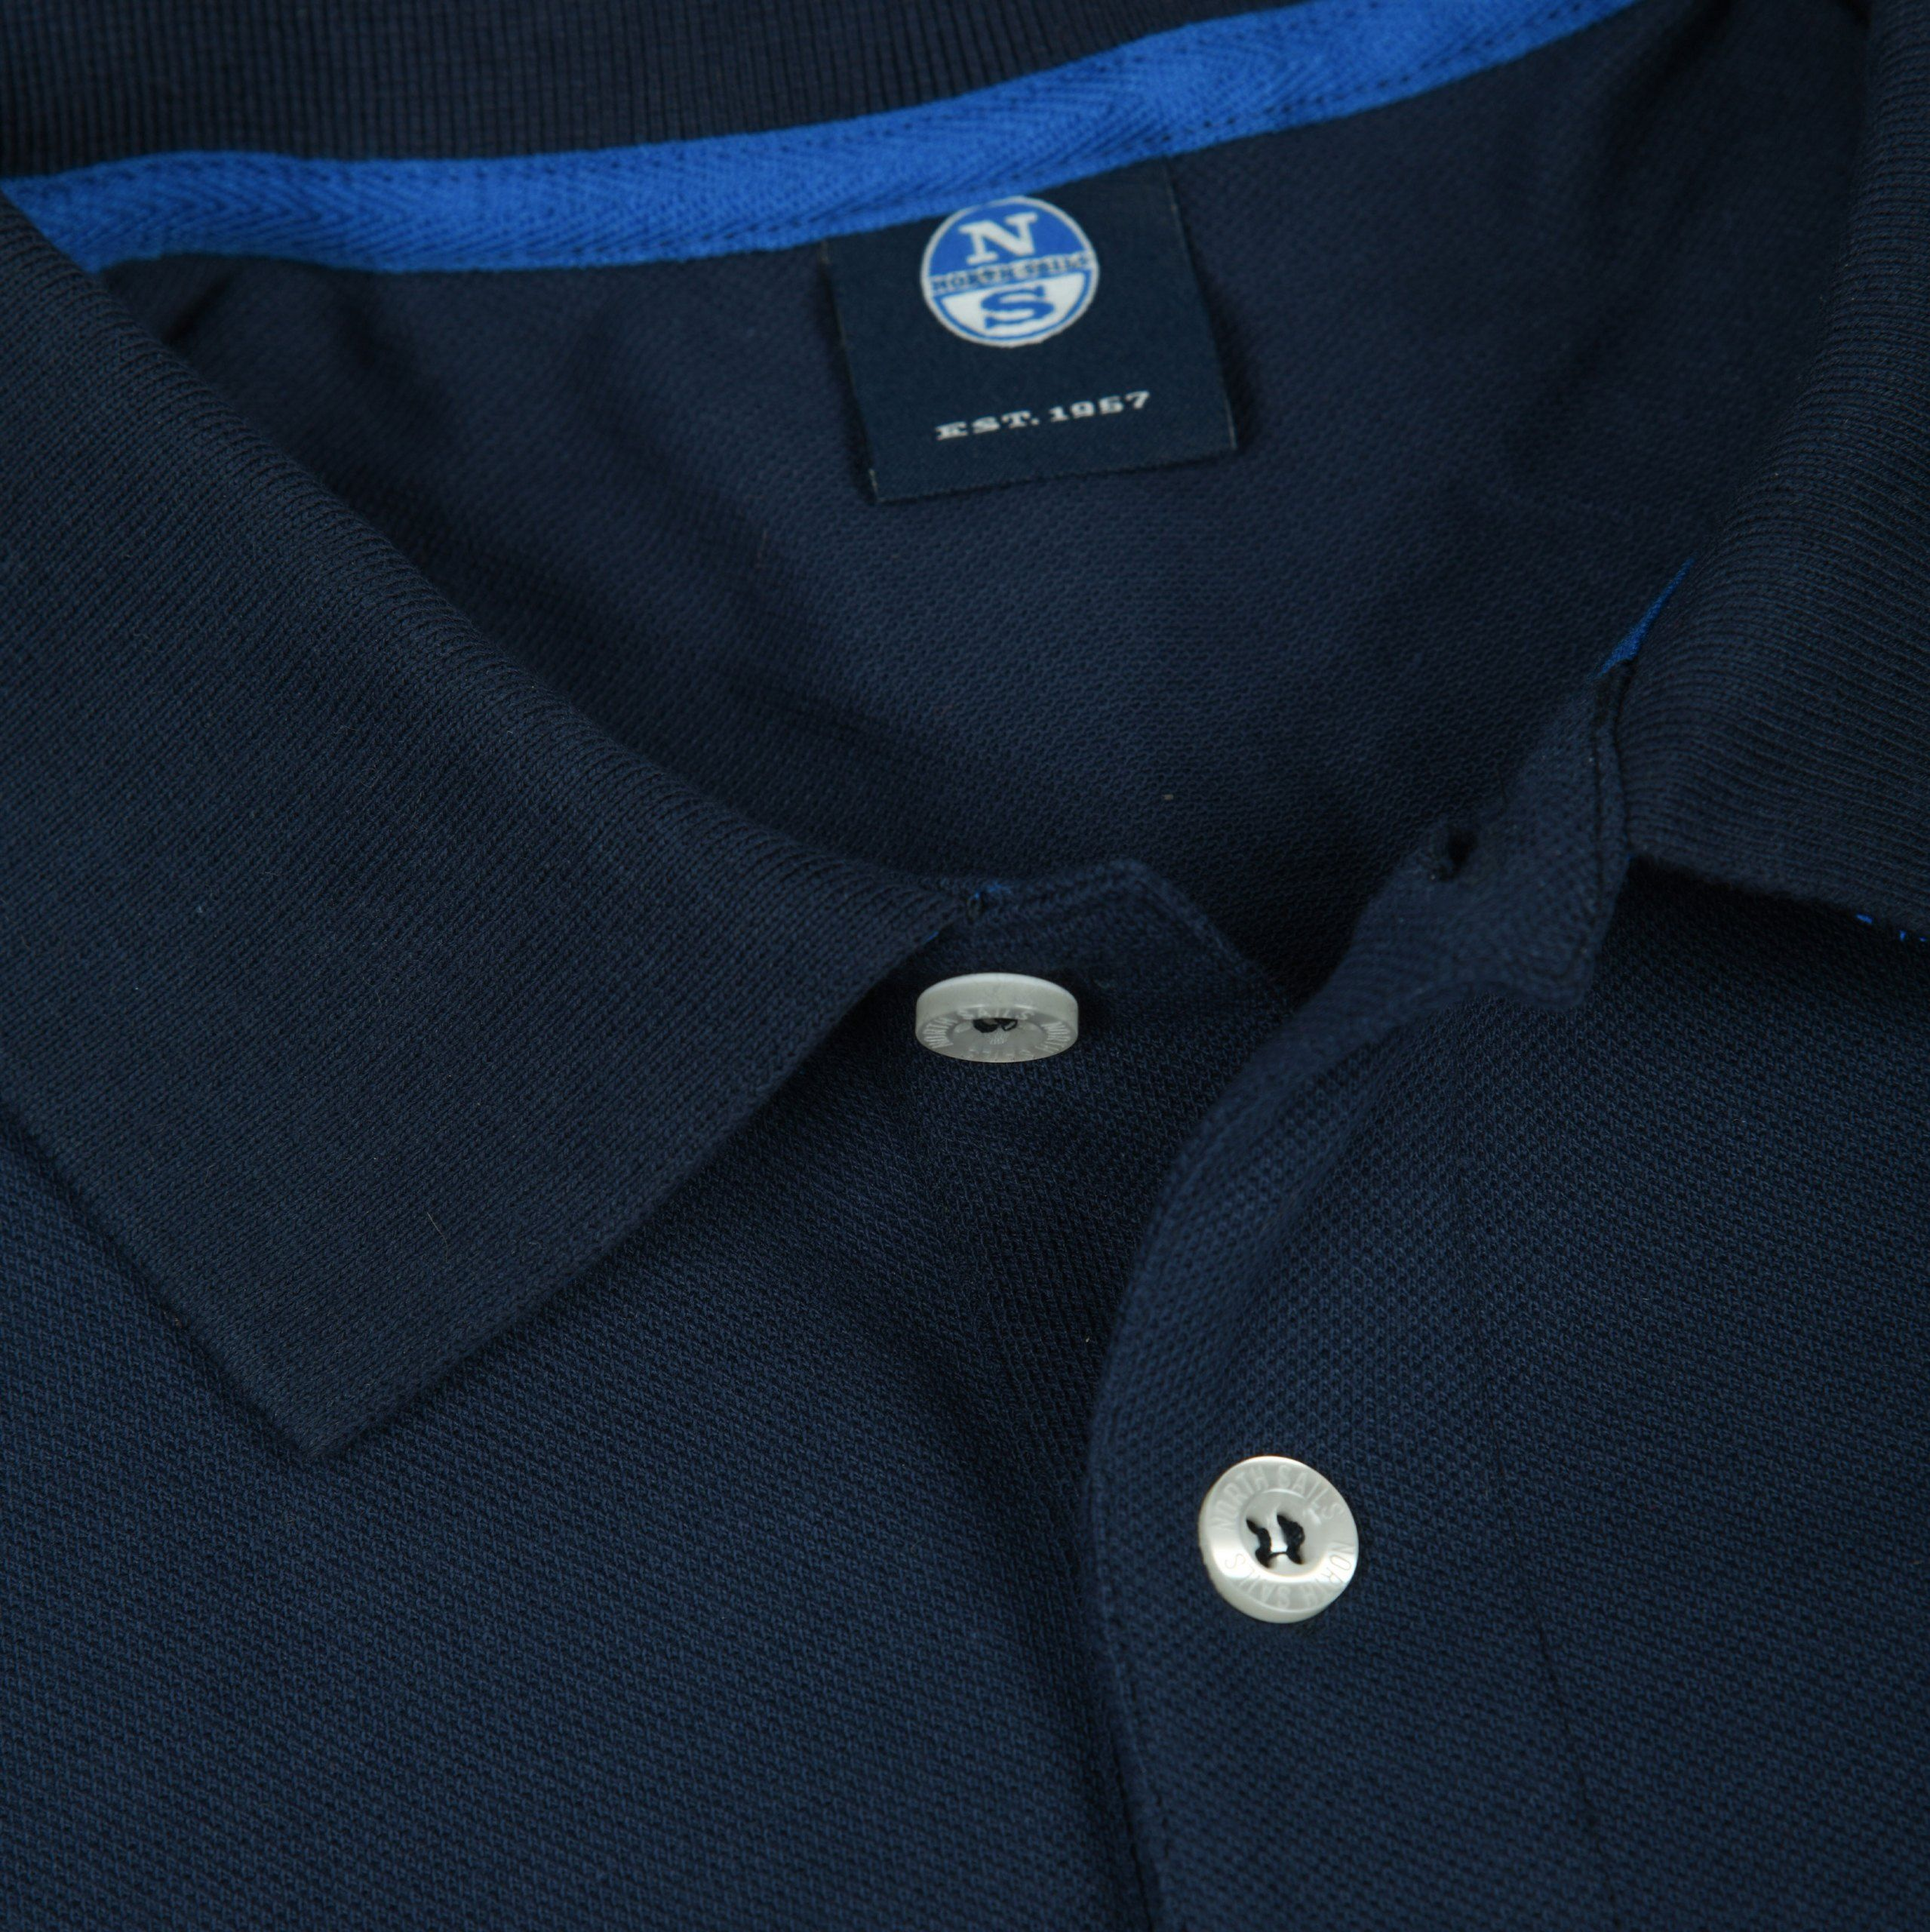 Poloshow North Sails Polo Navy Blue 6923280000802520 5